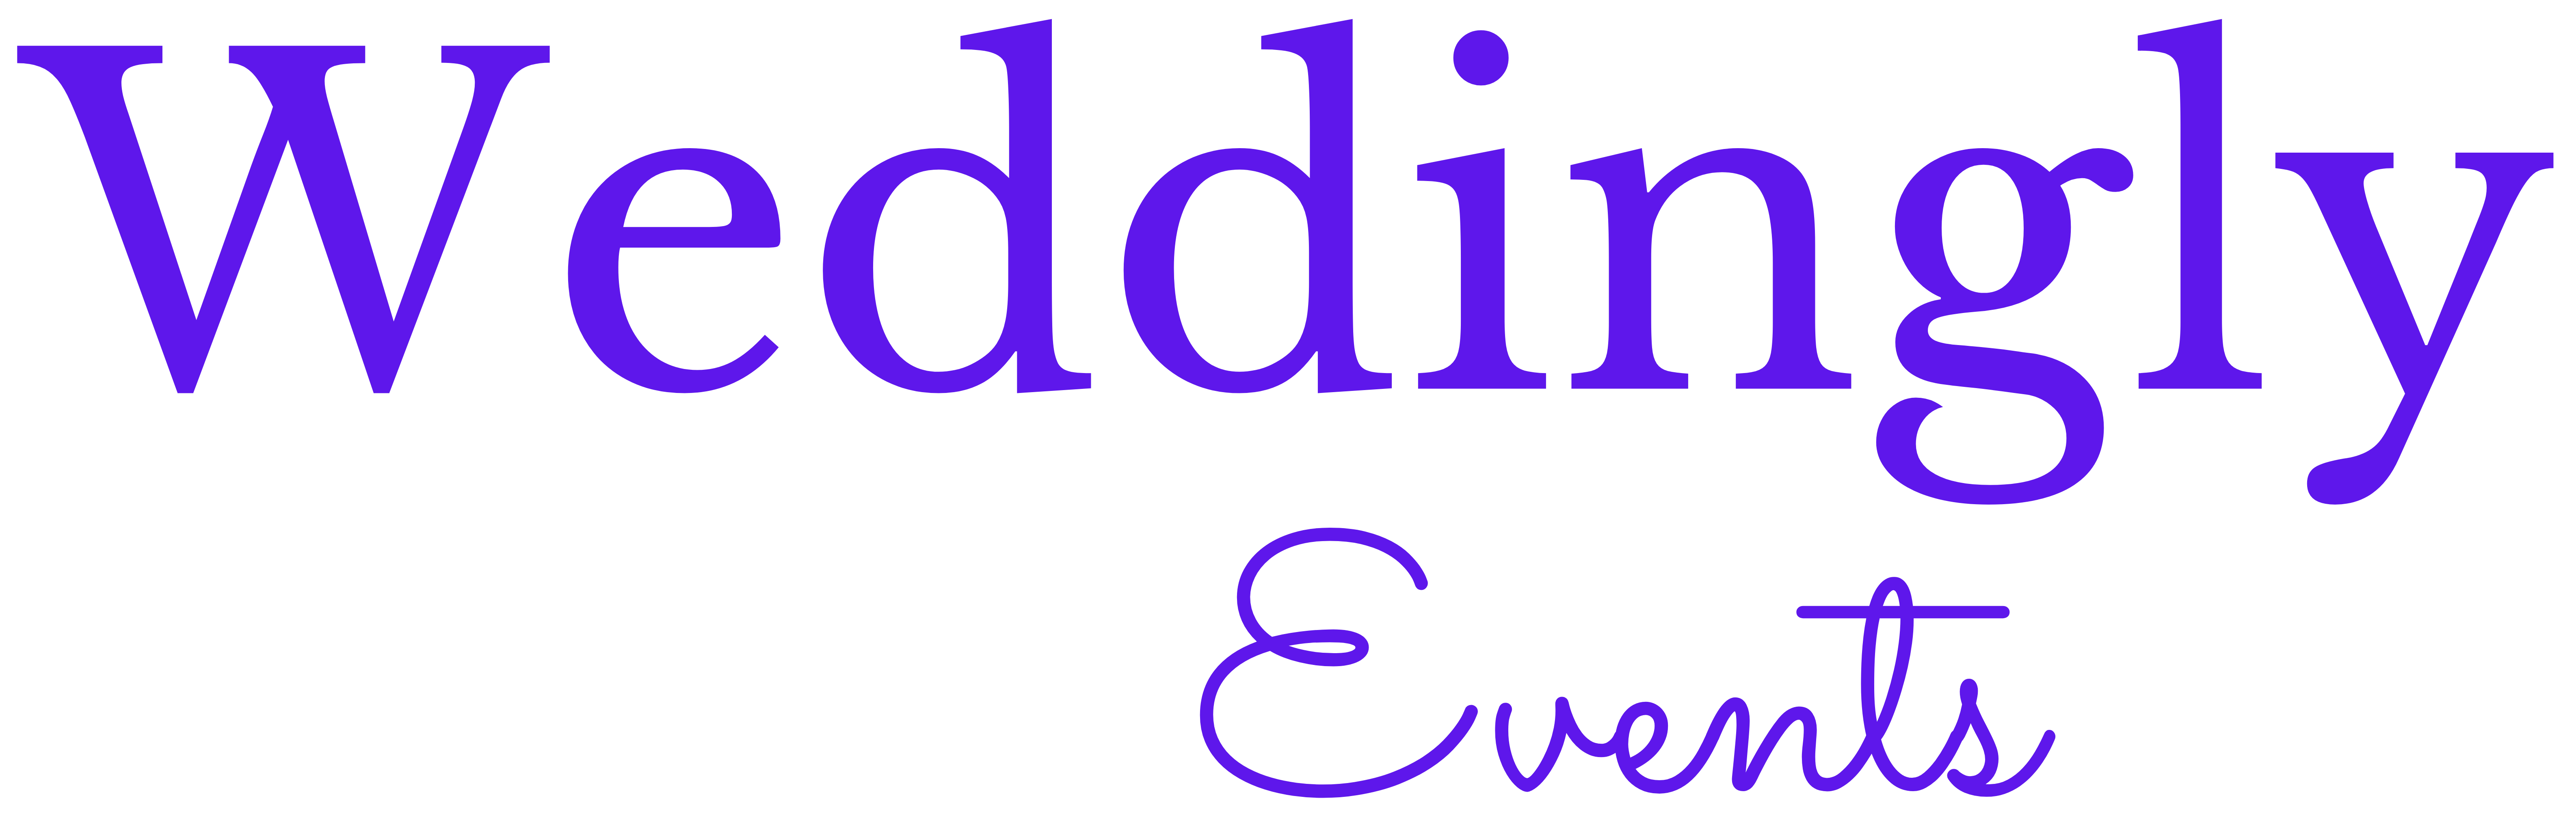 Weddingly Events Officiant Coordination St. Louis